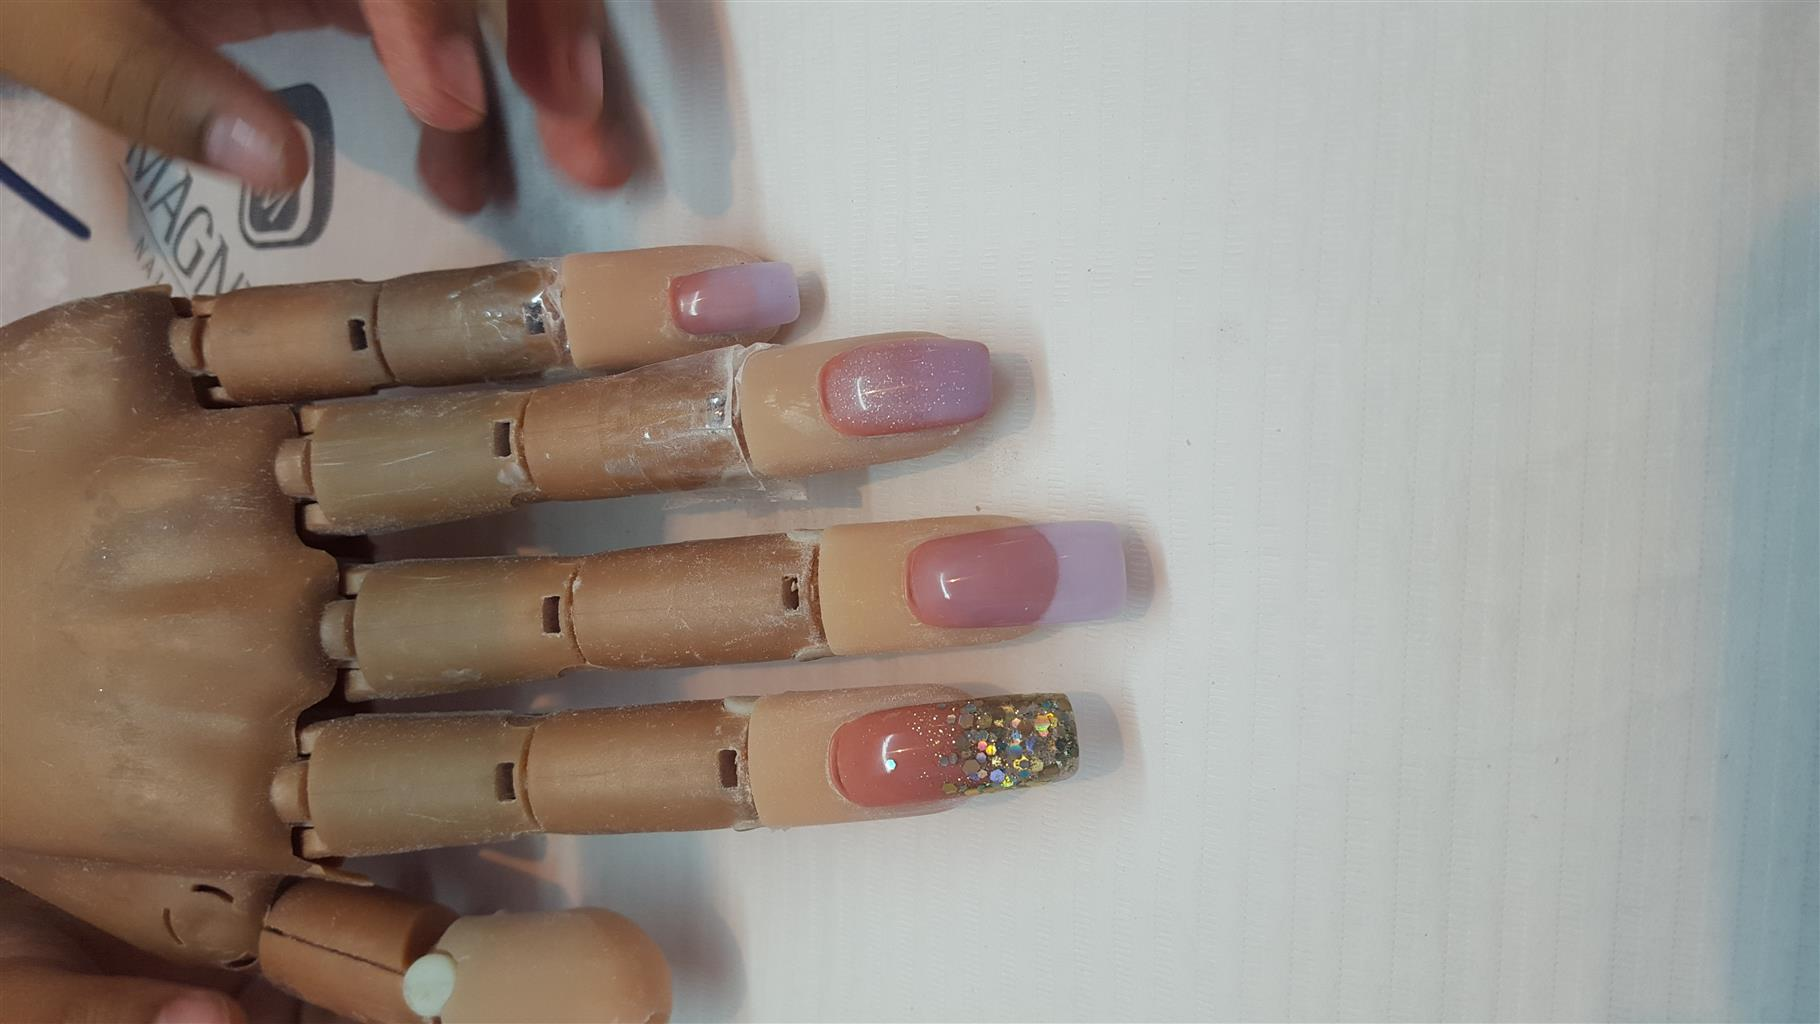 Models needed for Gel or Acrylic Nails... | Junk Mail